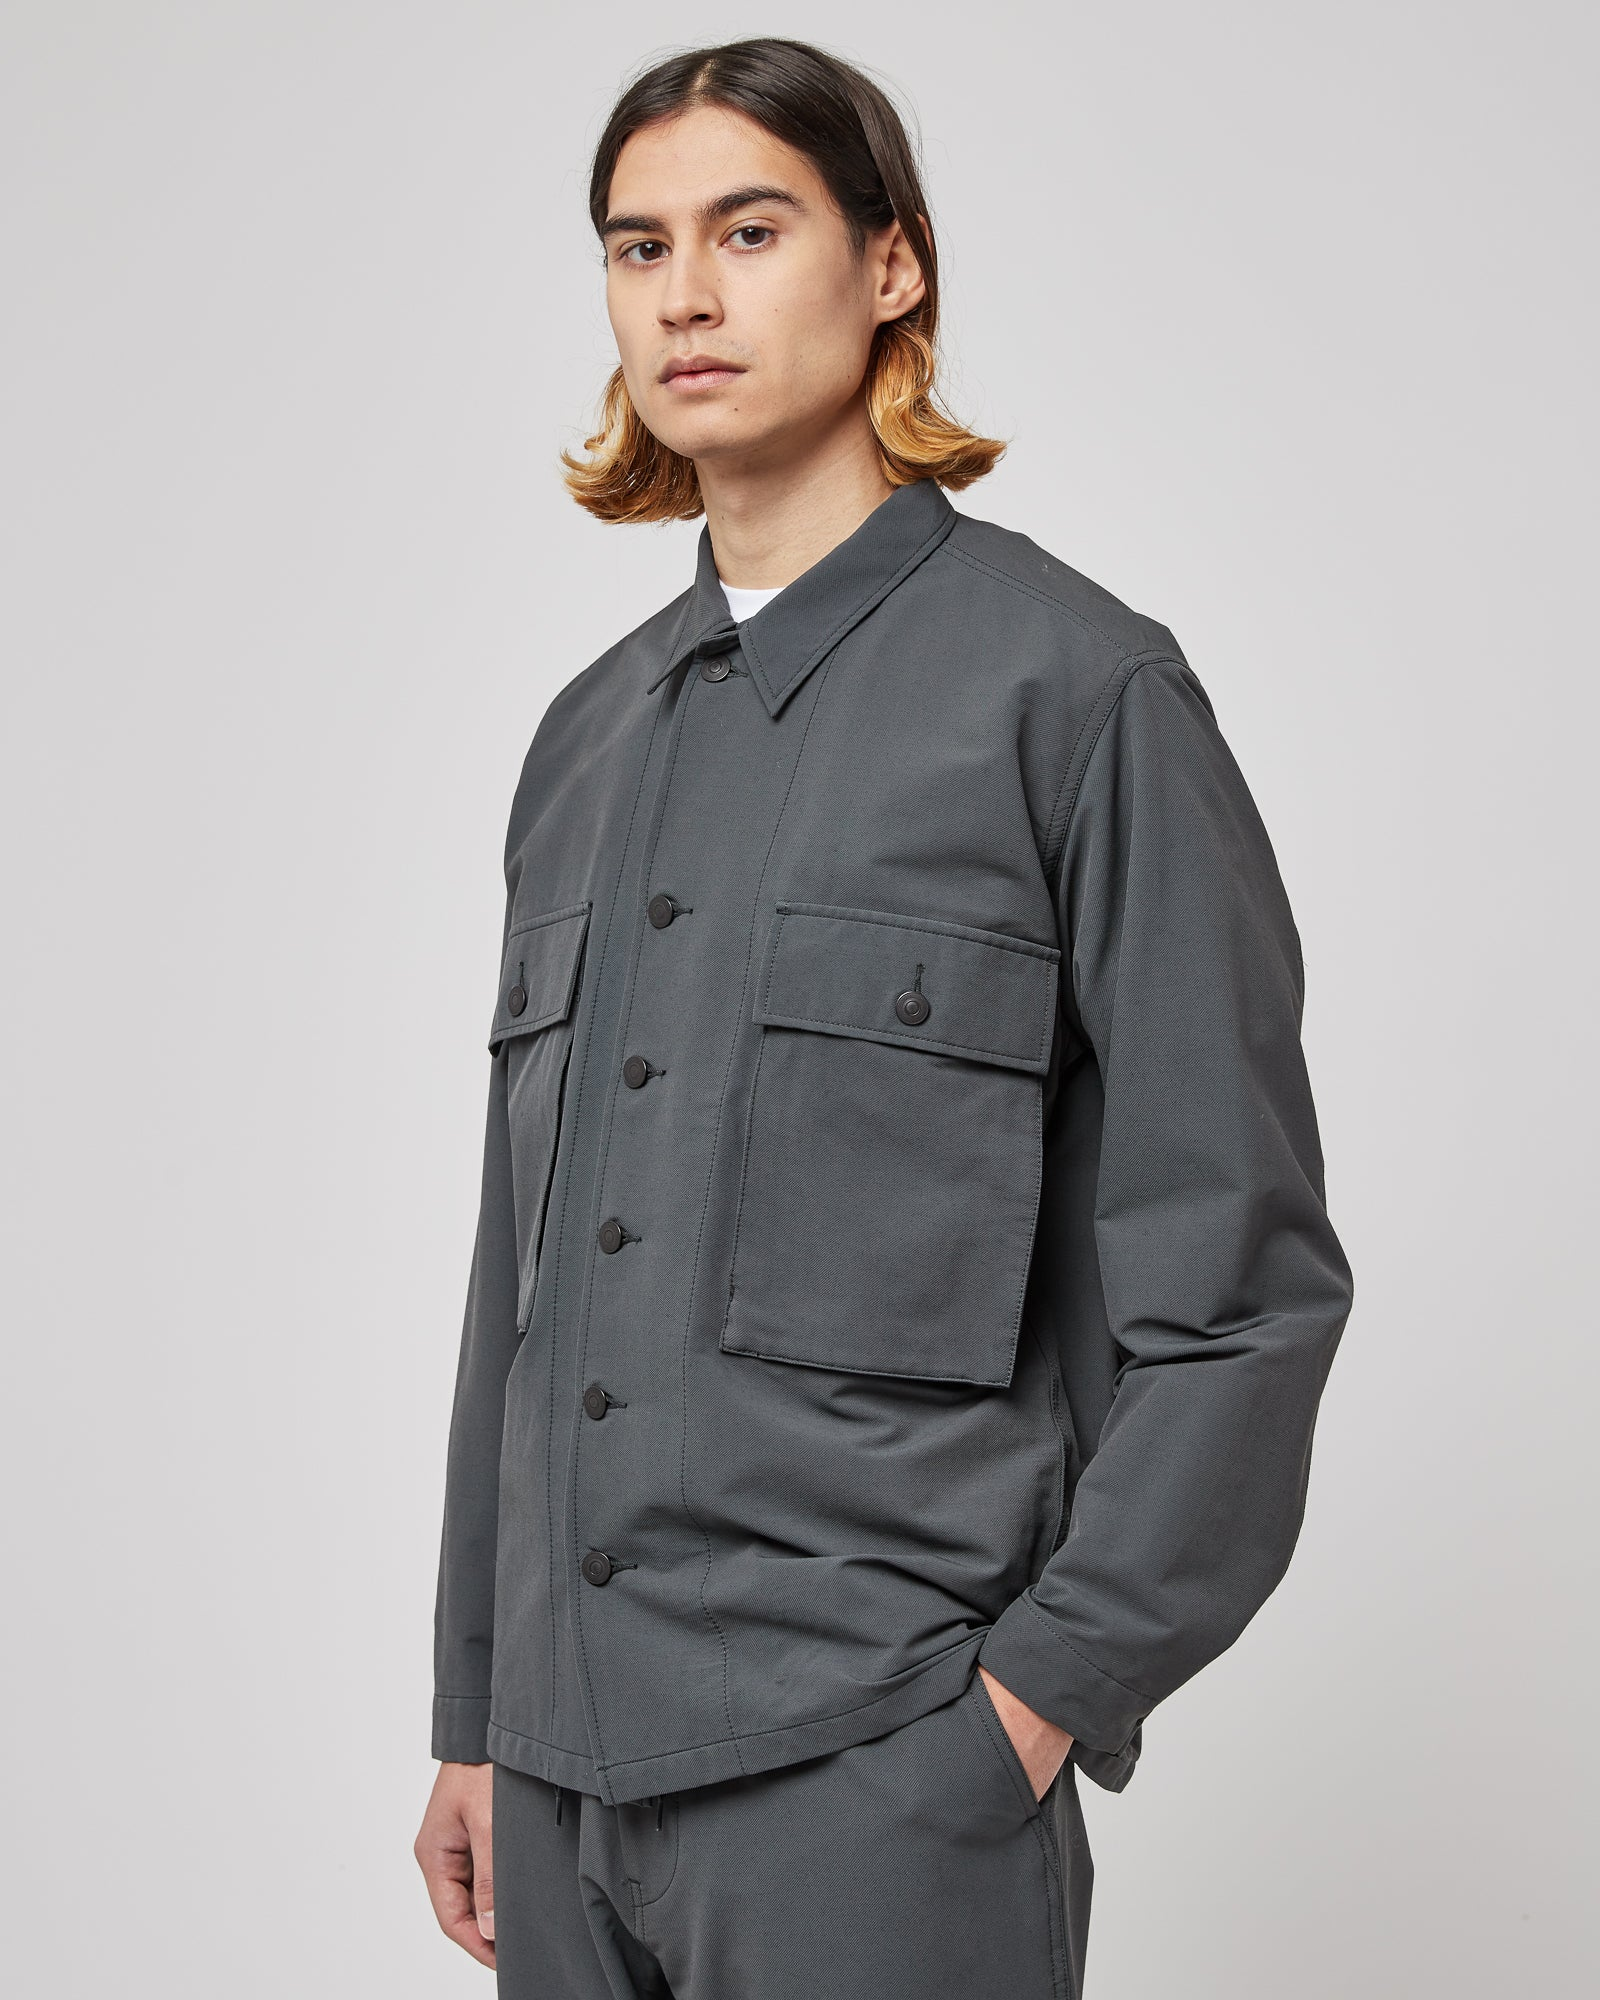 Utility Jacket in Charcoal